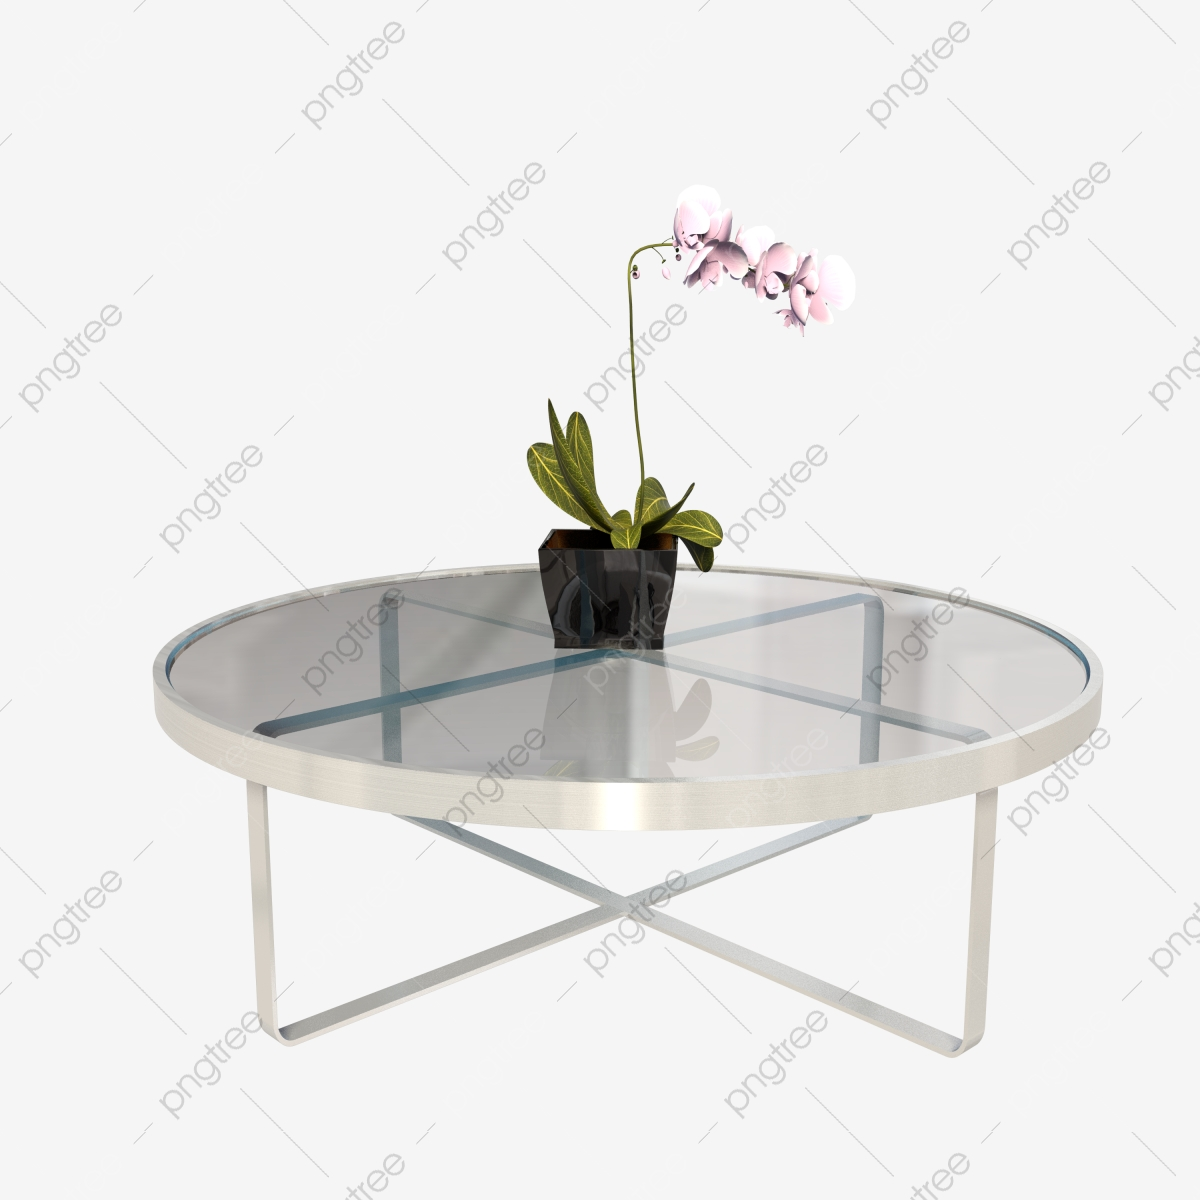 https de pngtree com freepng modern round glass coffee table 4453085 html